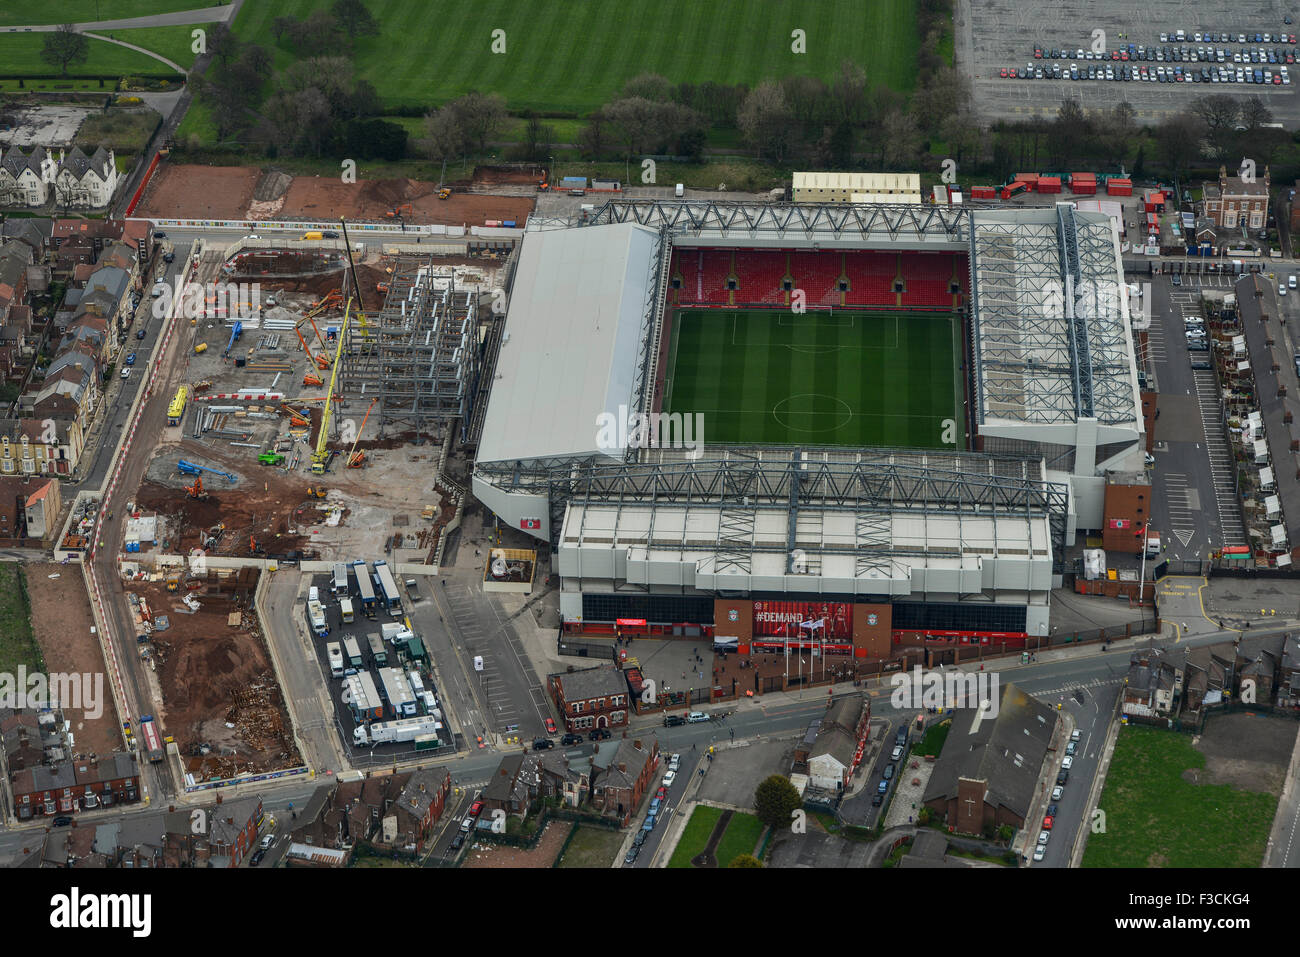 Aerial photograph of Liverpool Football Club stadium, Anfield - Stock Image